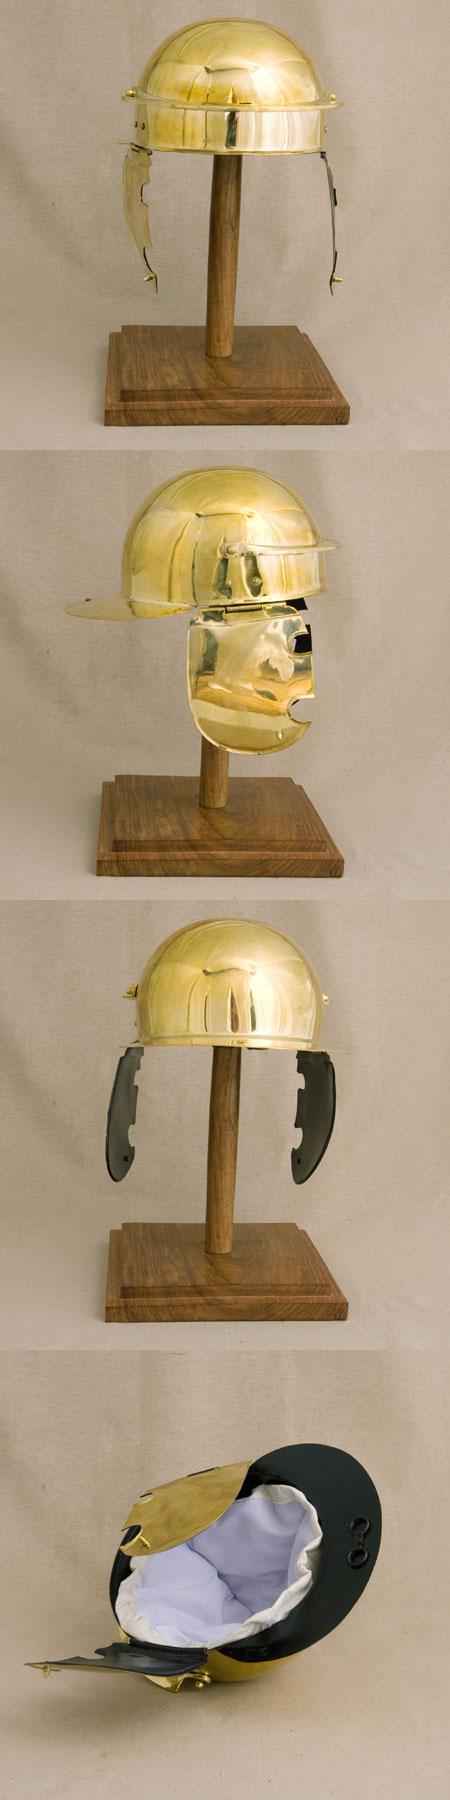 Roman legion helmet Coolus C for reenactors